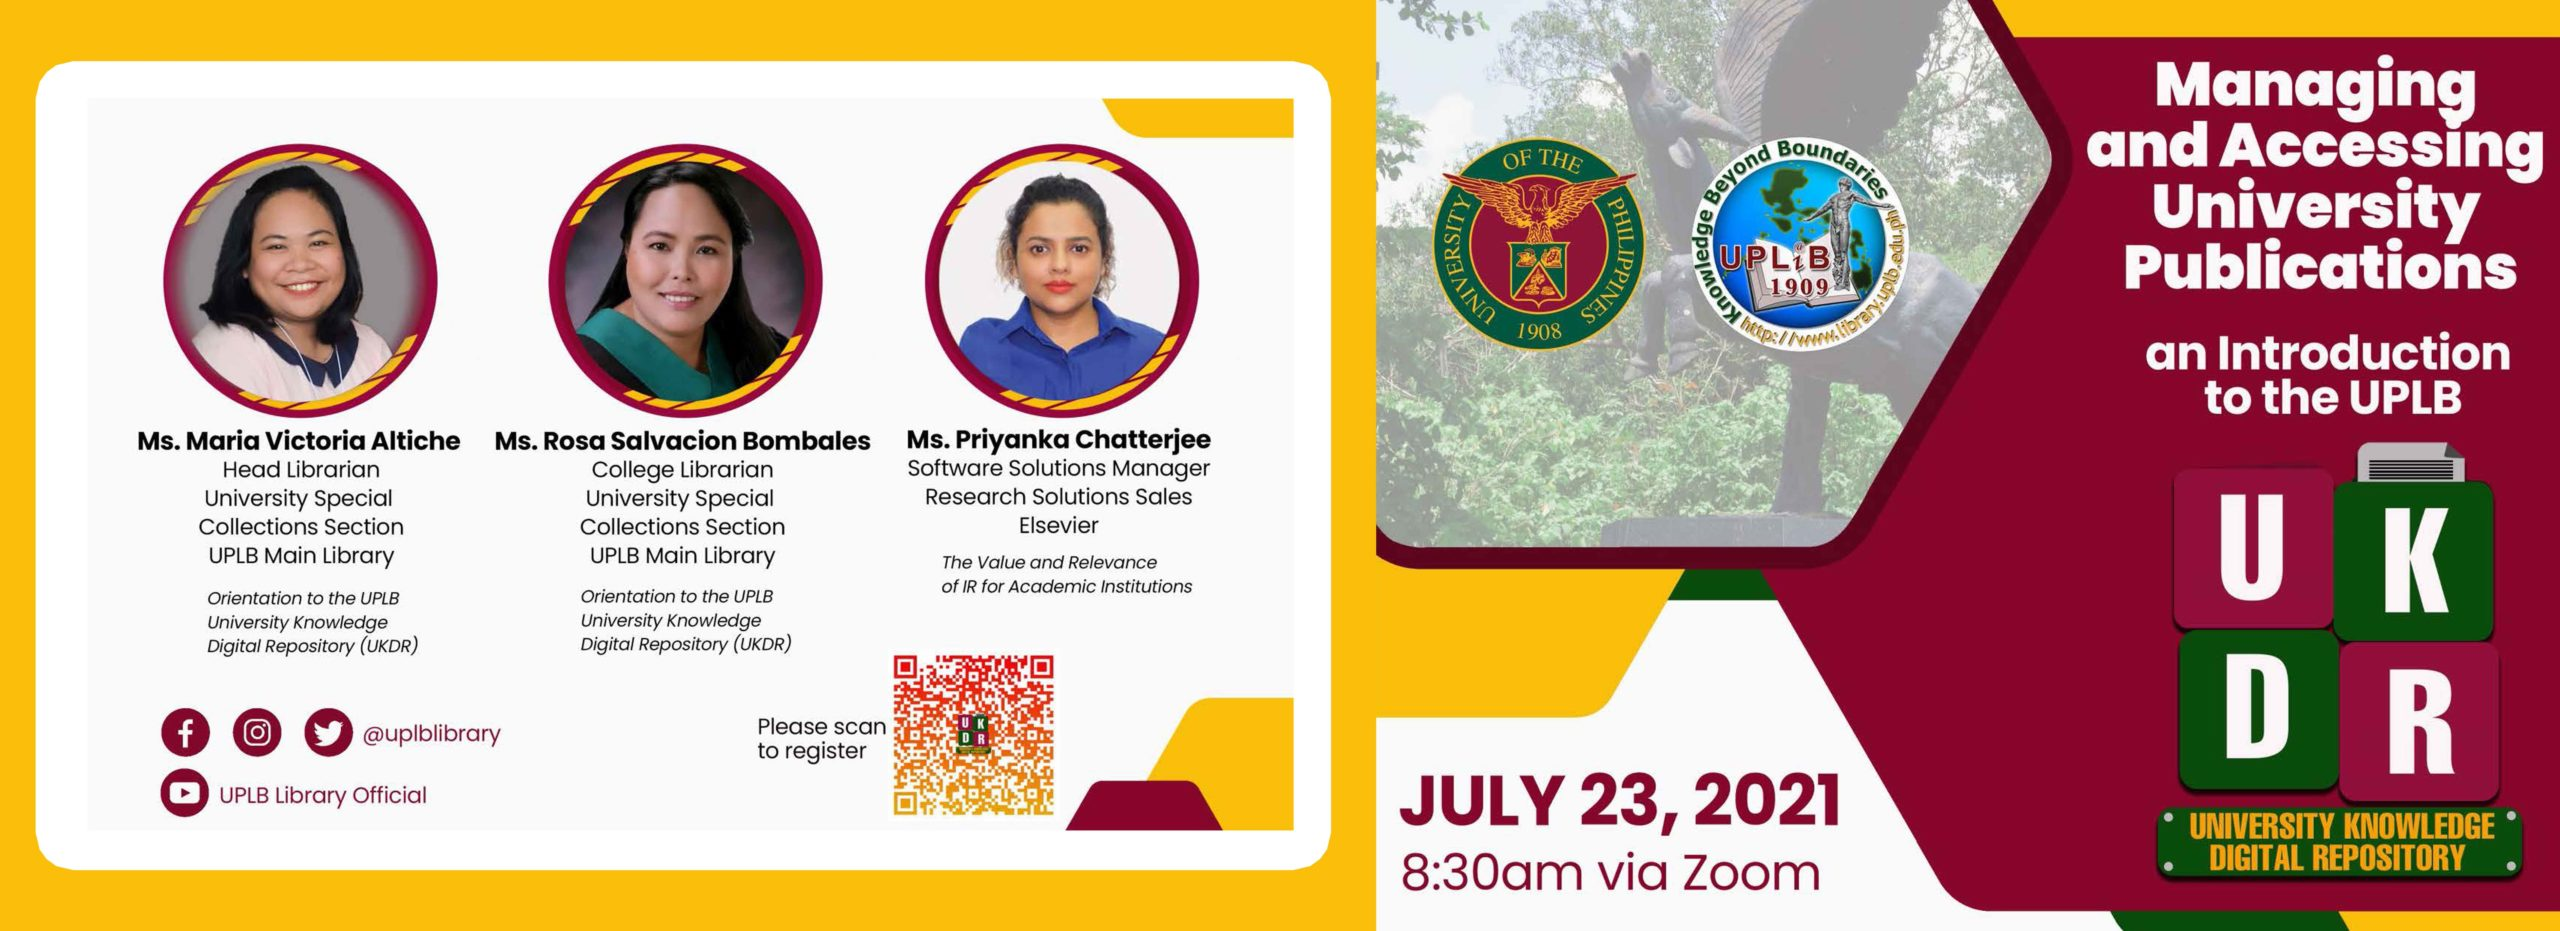 Webinar and Launching of the UPLB University Knowledge Digital Repository